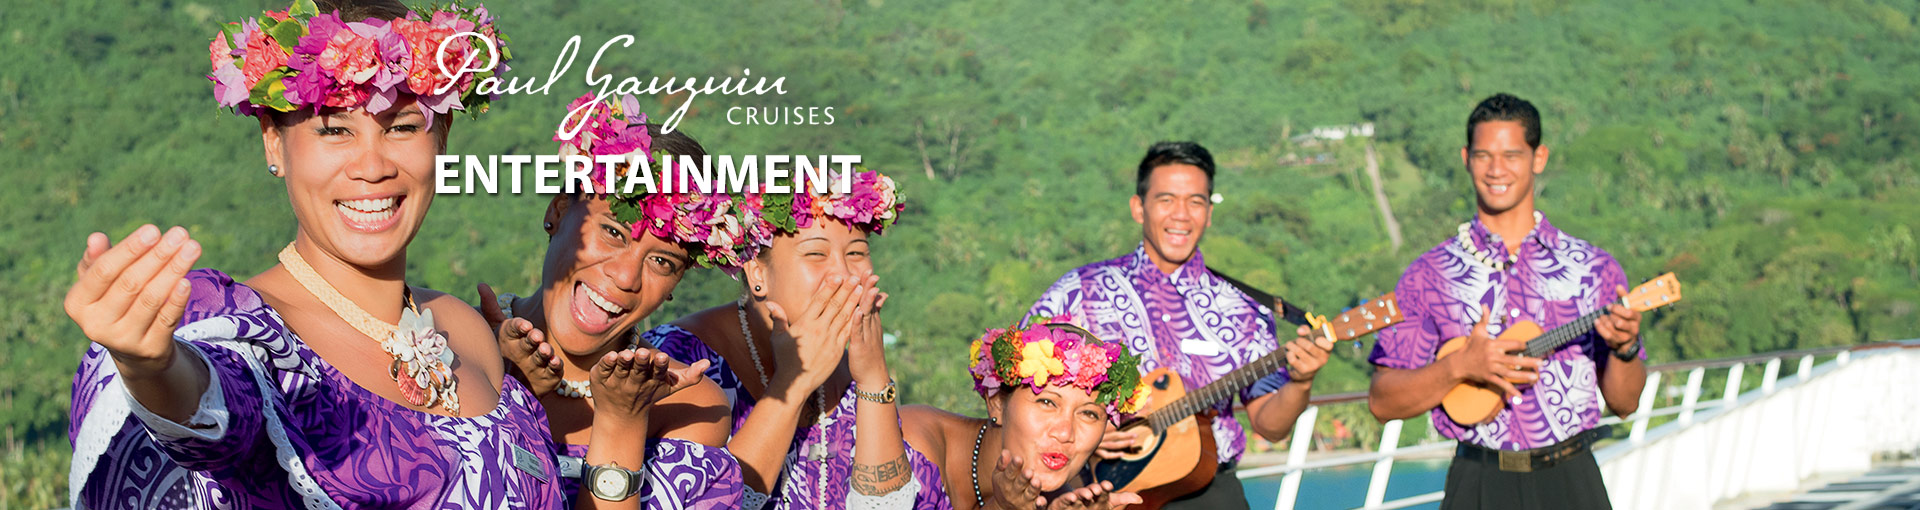 Paul Gauguin Cruises Entertainment